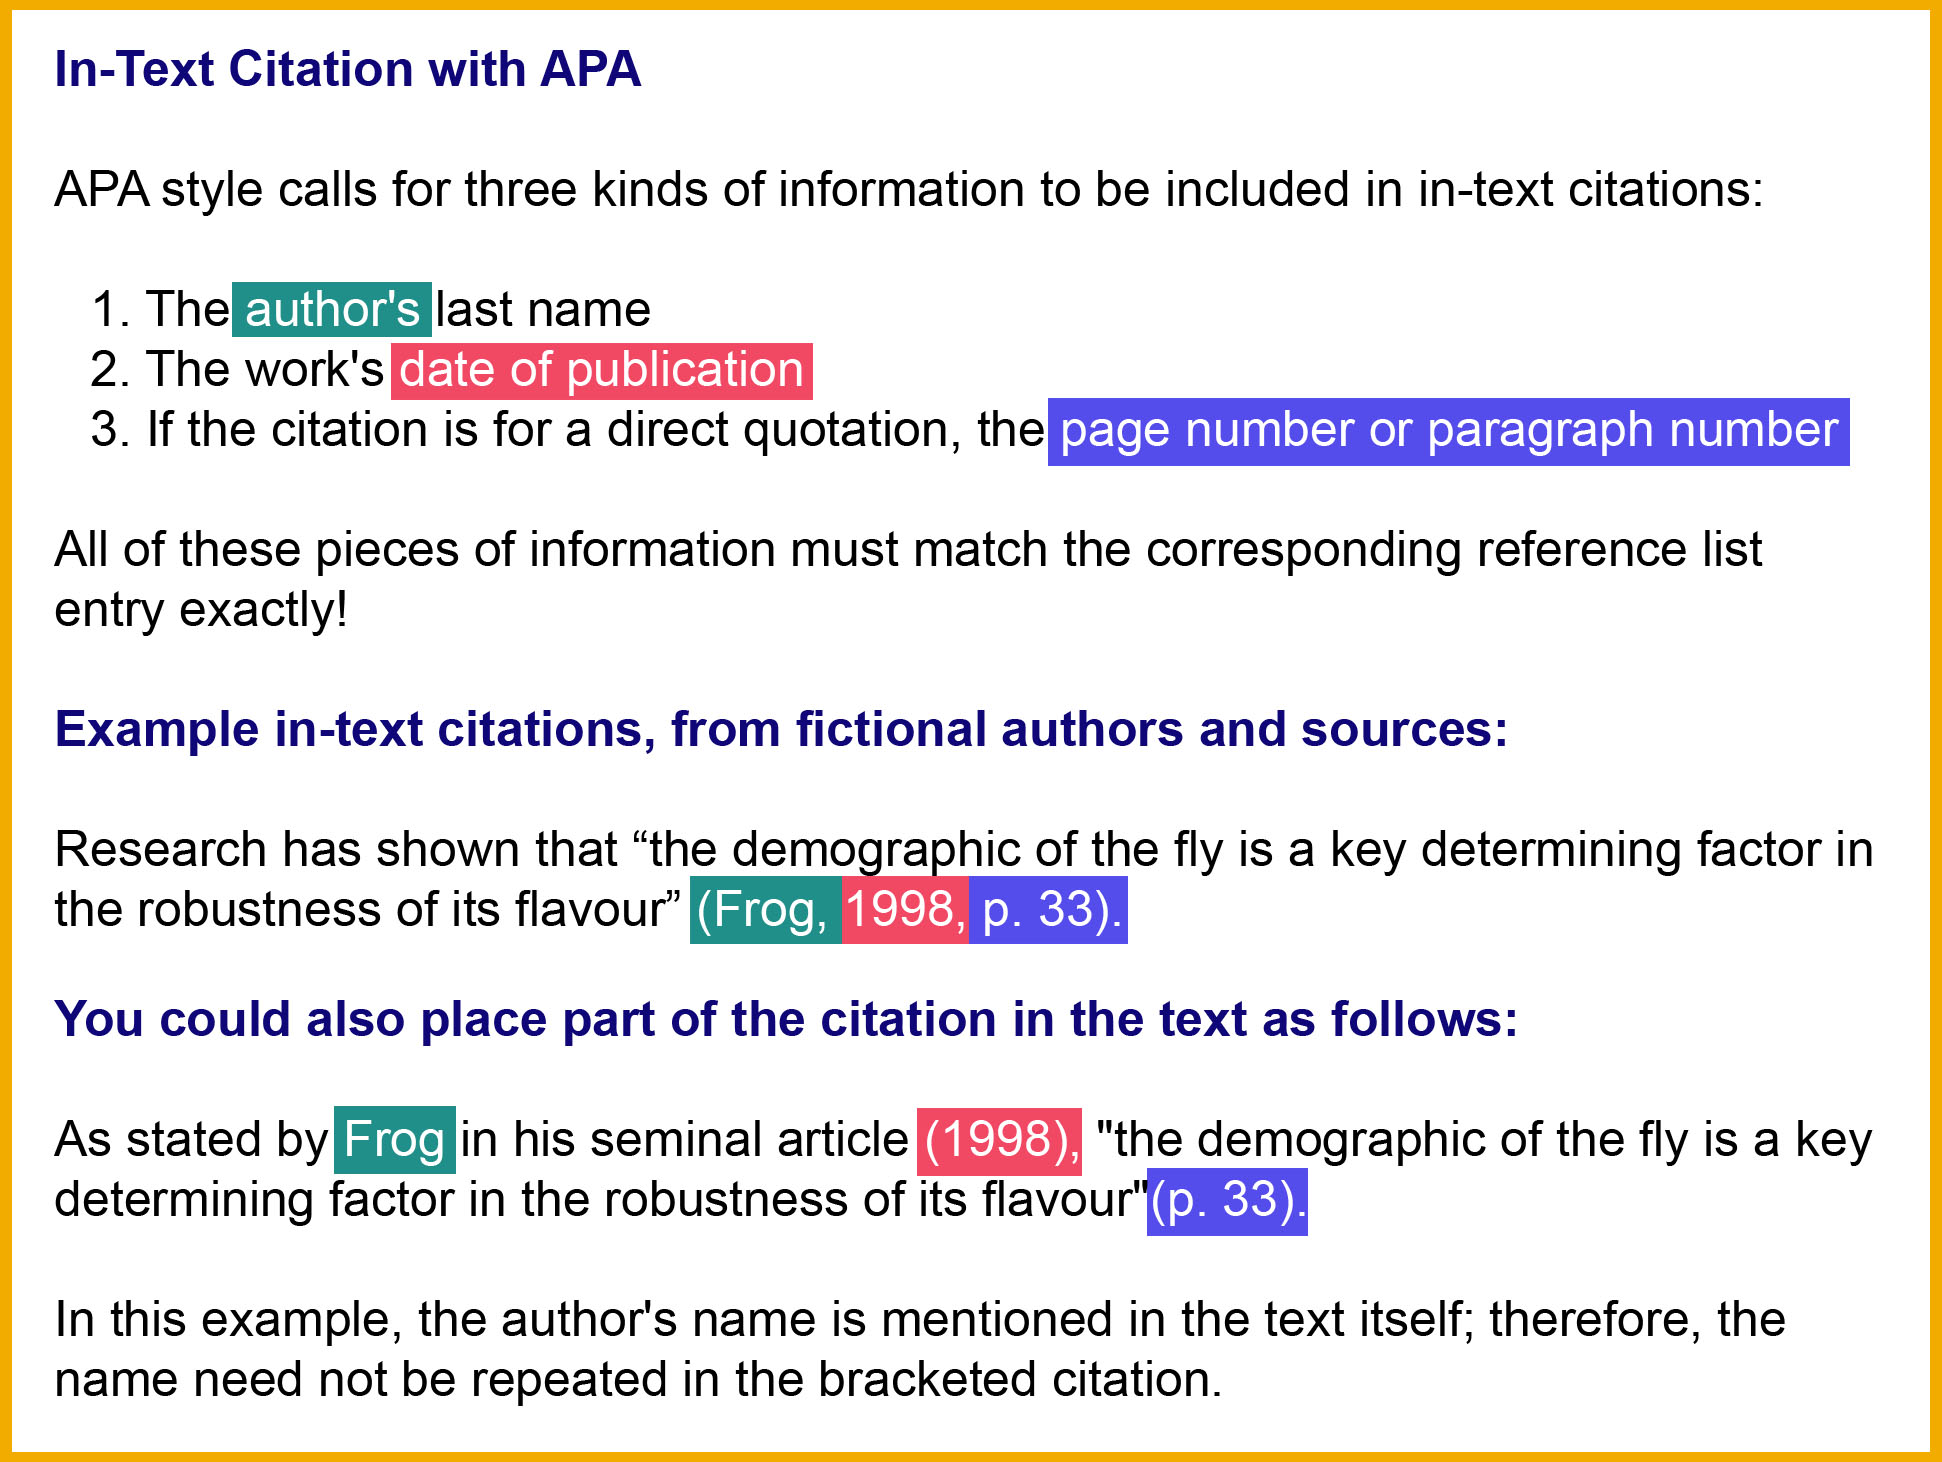 apa 6th edition citation style guide libguides at dalhousie